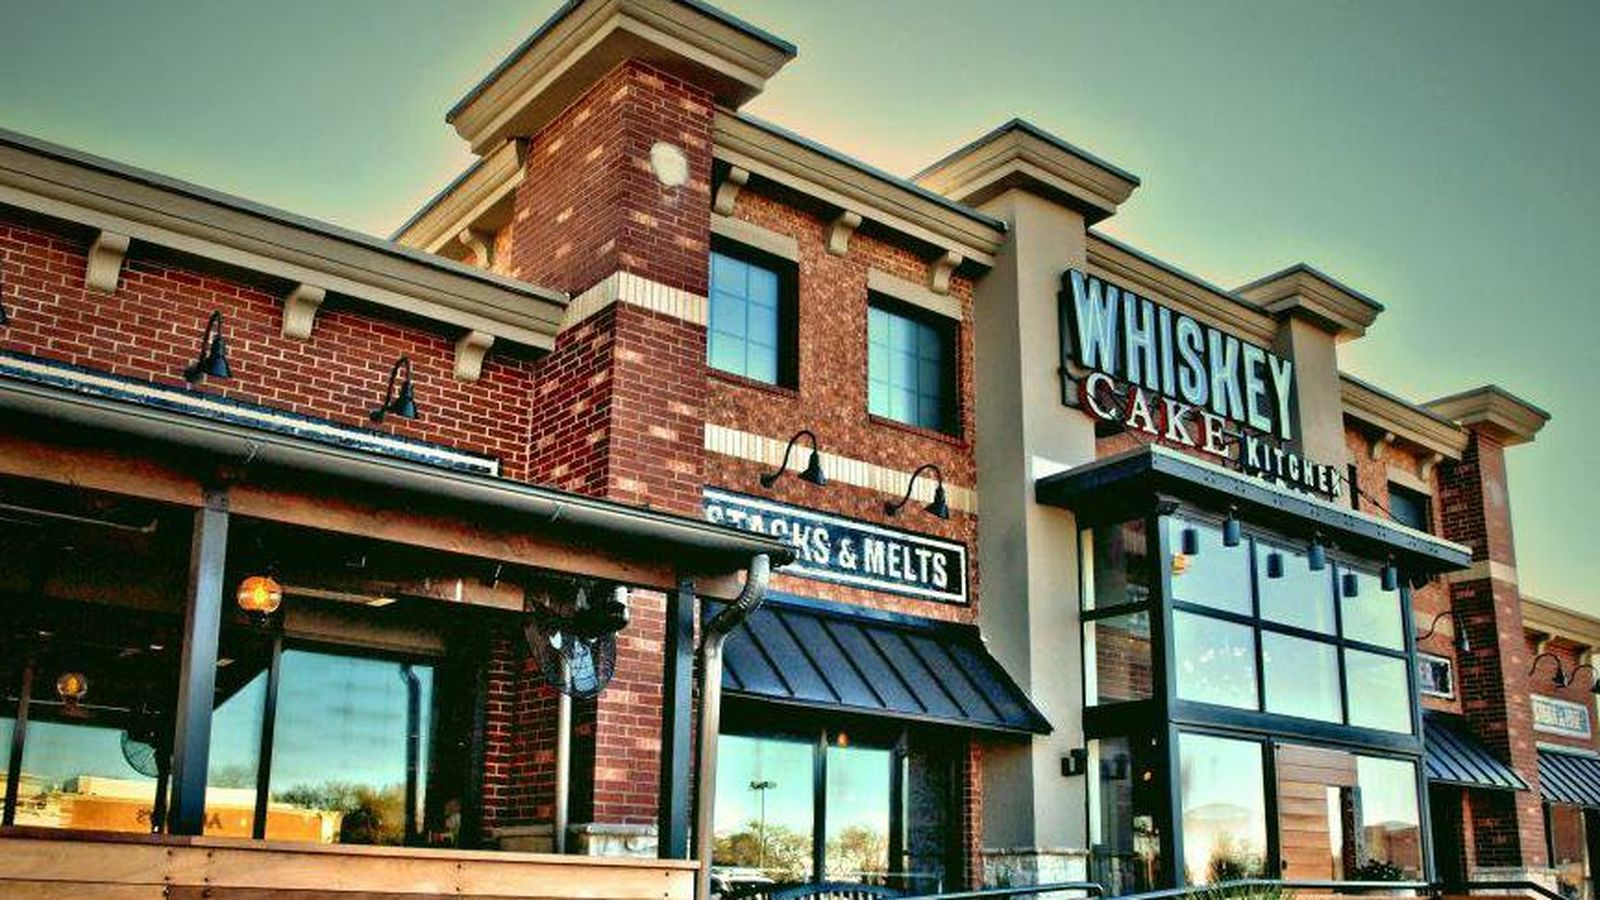 What better place to learn about whiskey than a place named after whiskey?